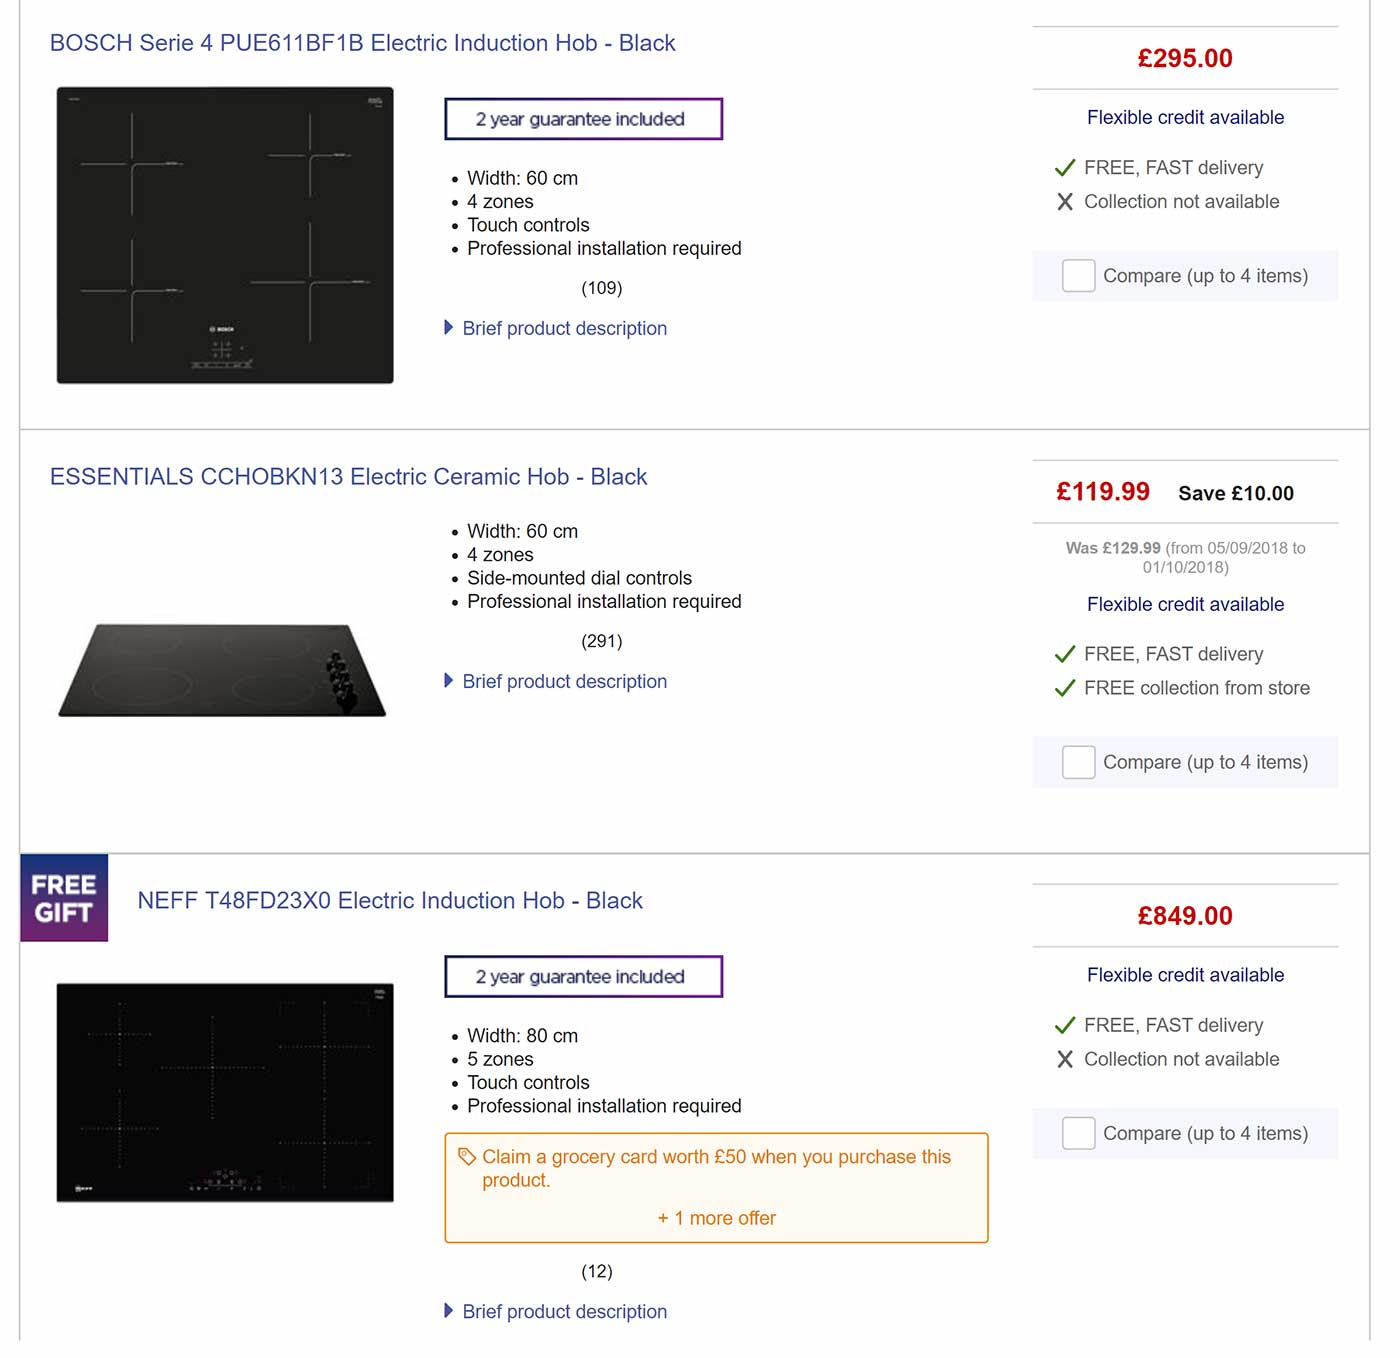 Overview page at Currys with some important decision criteria